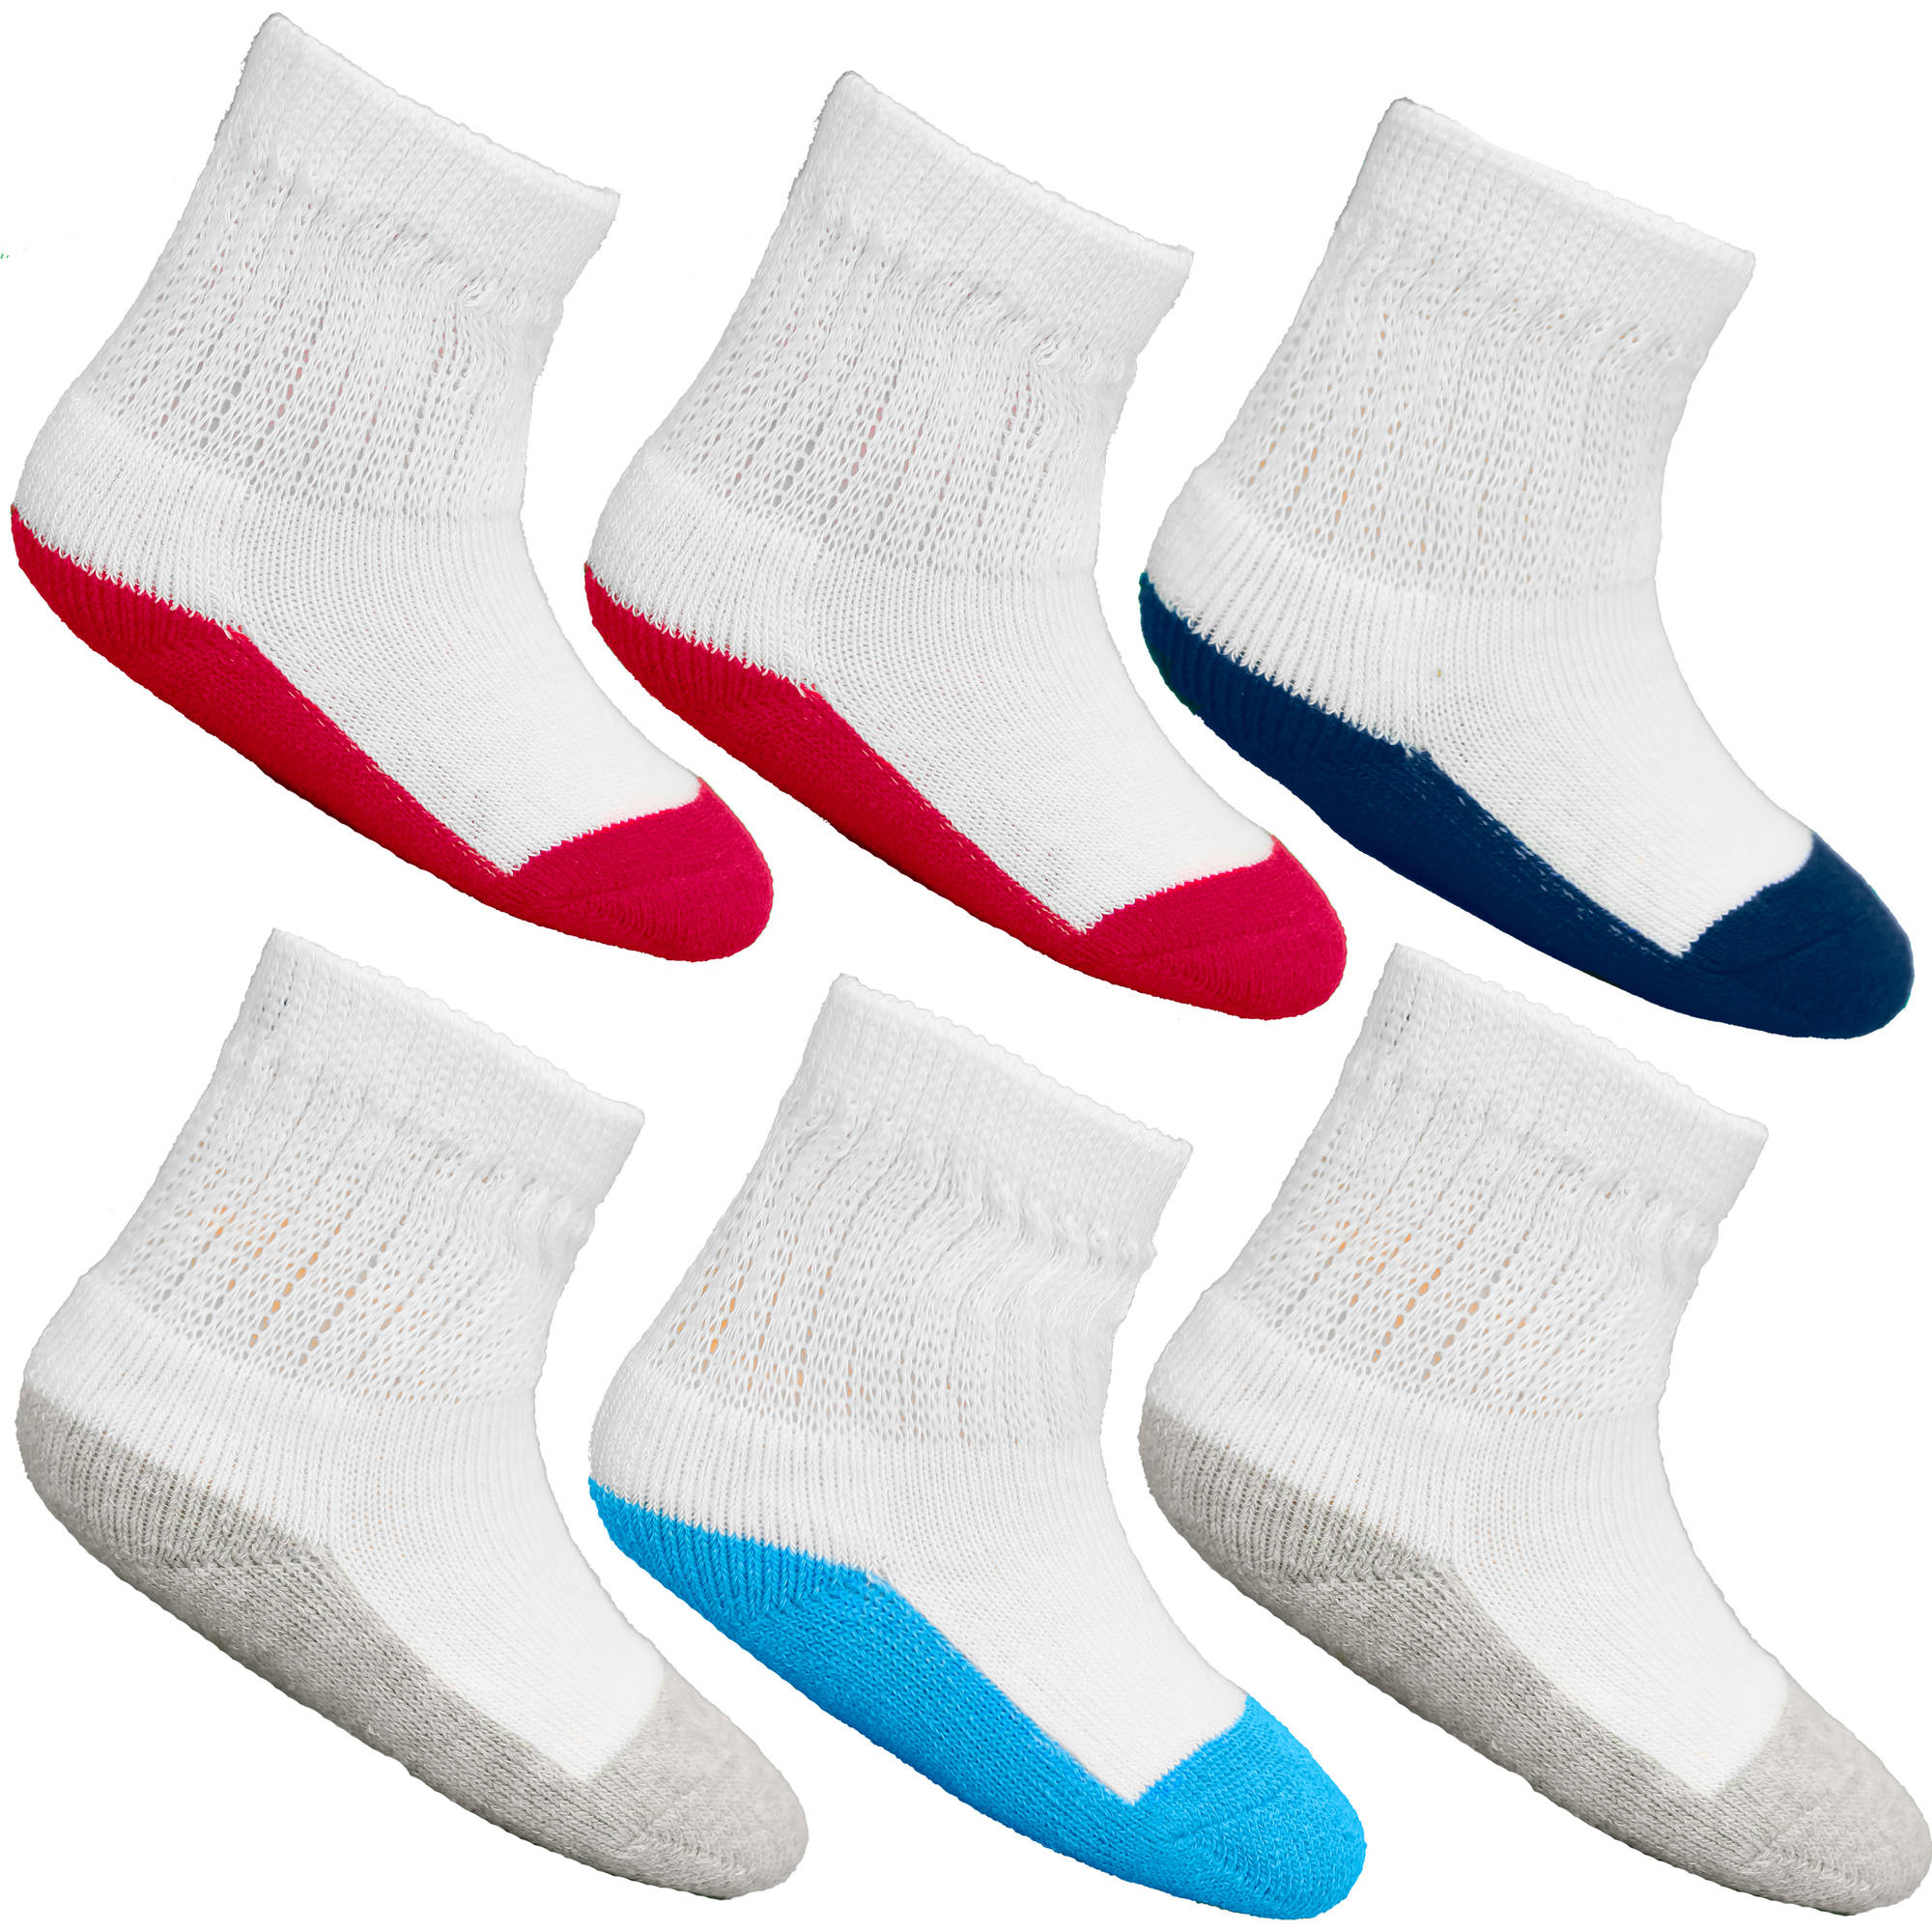 Fruit of the Loom Value Pack Baby Boys Crew Socks - 6 Pairs